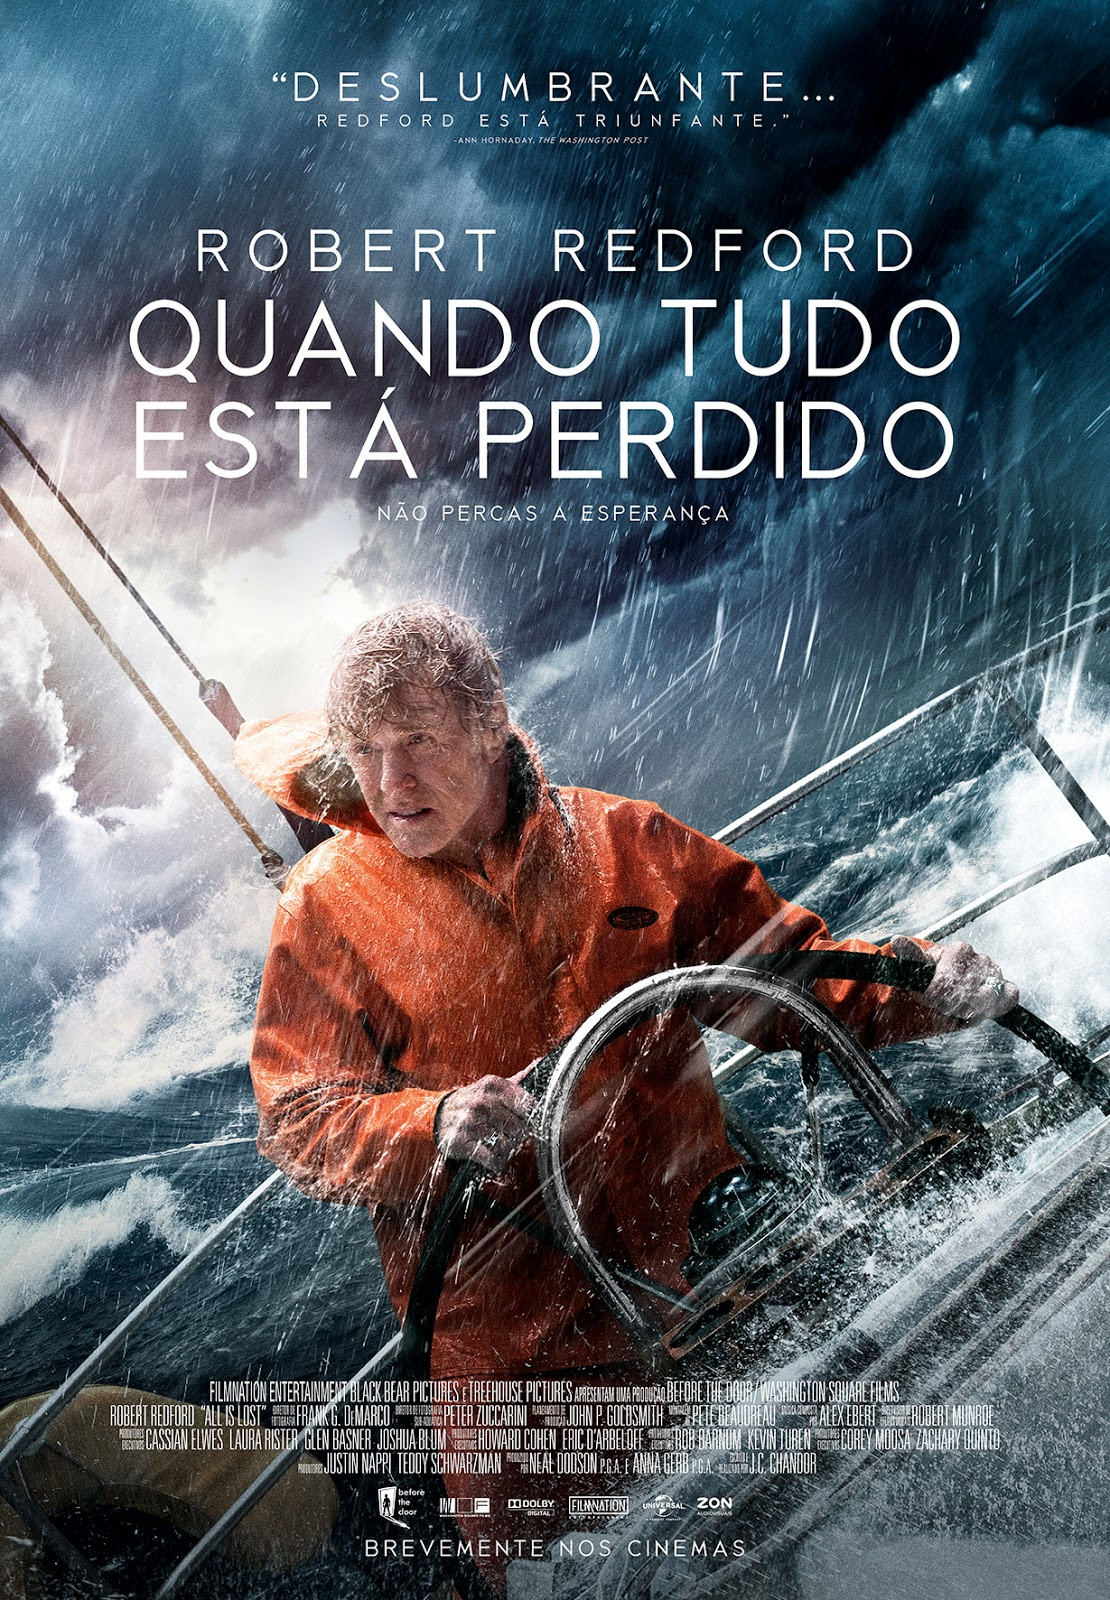 http://cinema.sapo.pt/filme/all-is-lost